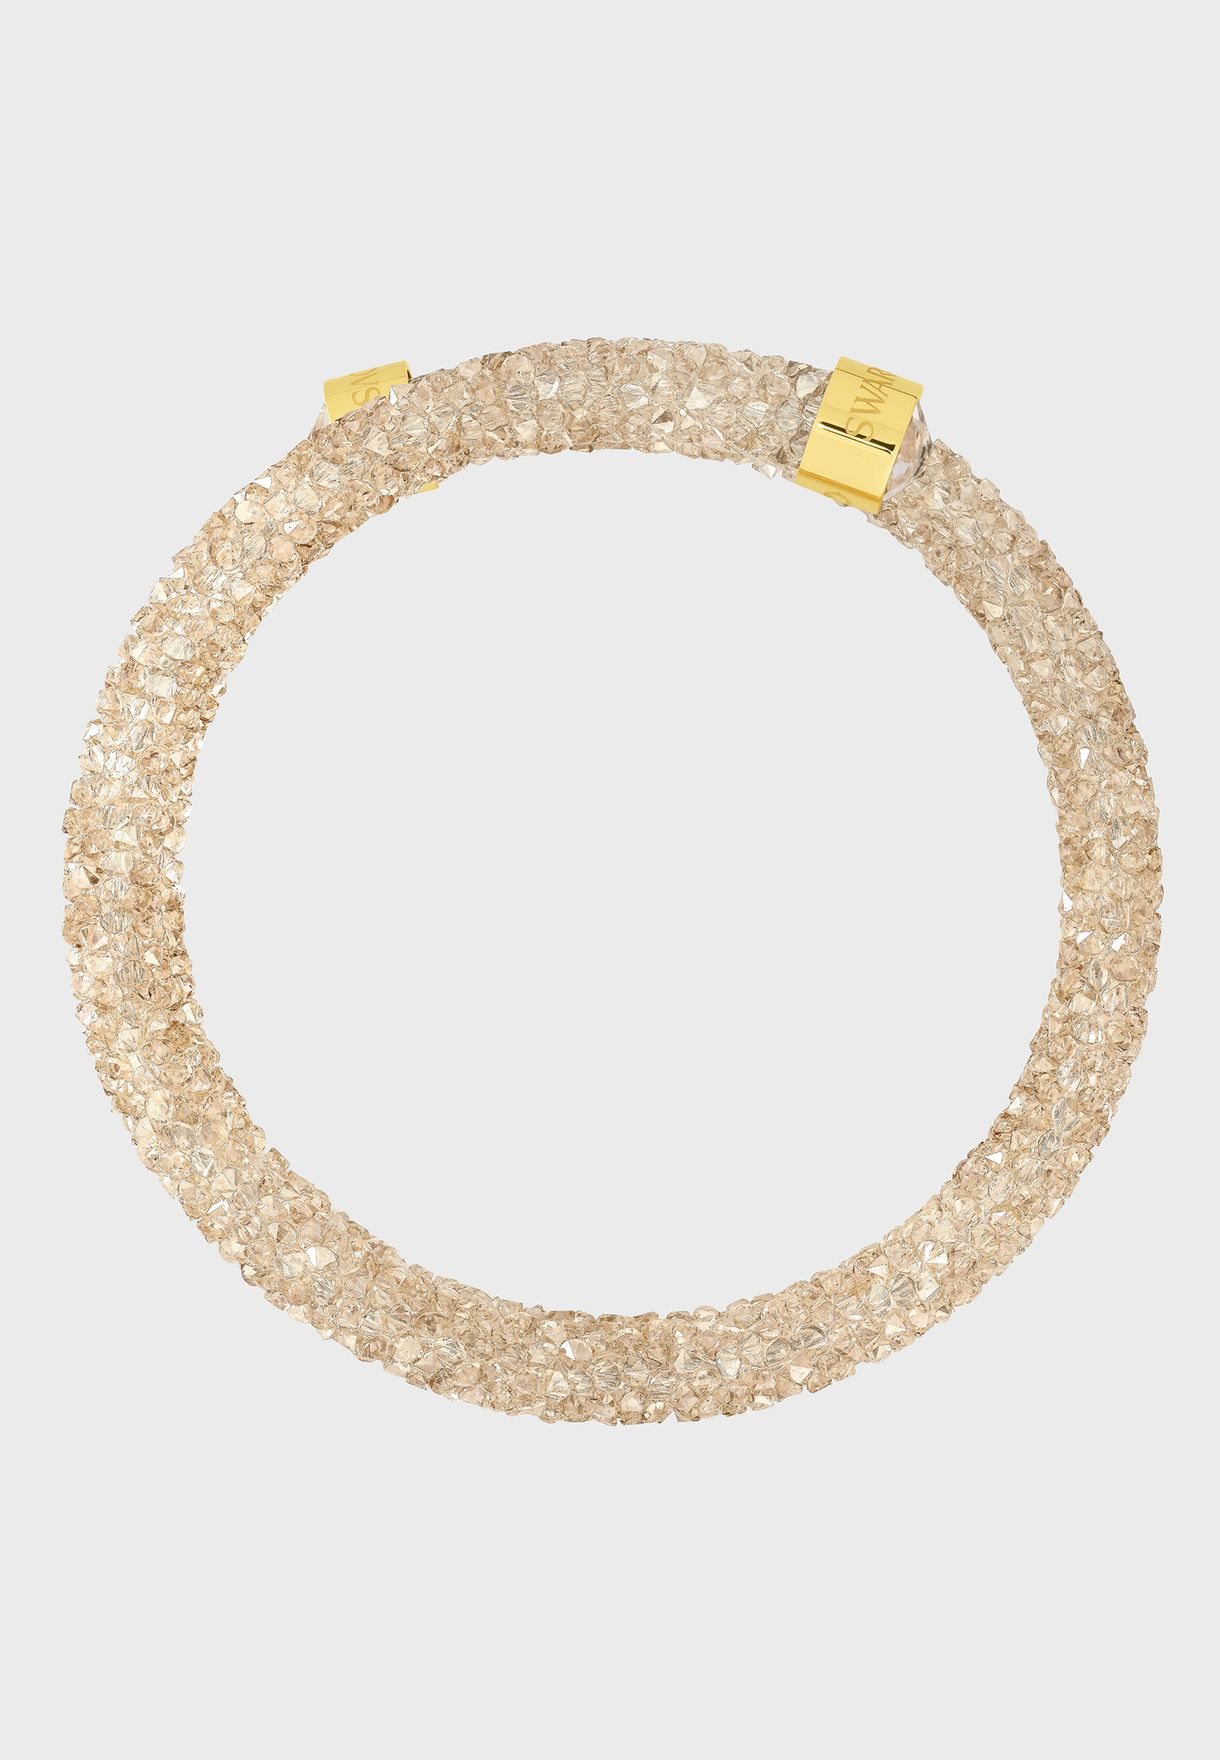 efadeb5a2 Shop Swarovski gold Crystaldust Double Bangle 5237763/5255907 for ...